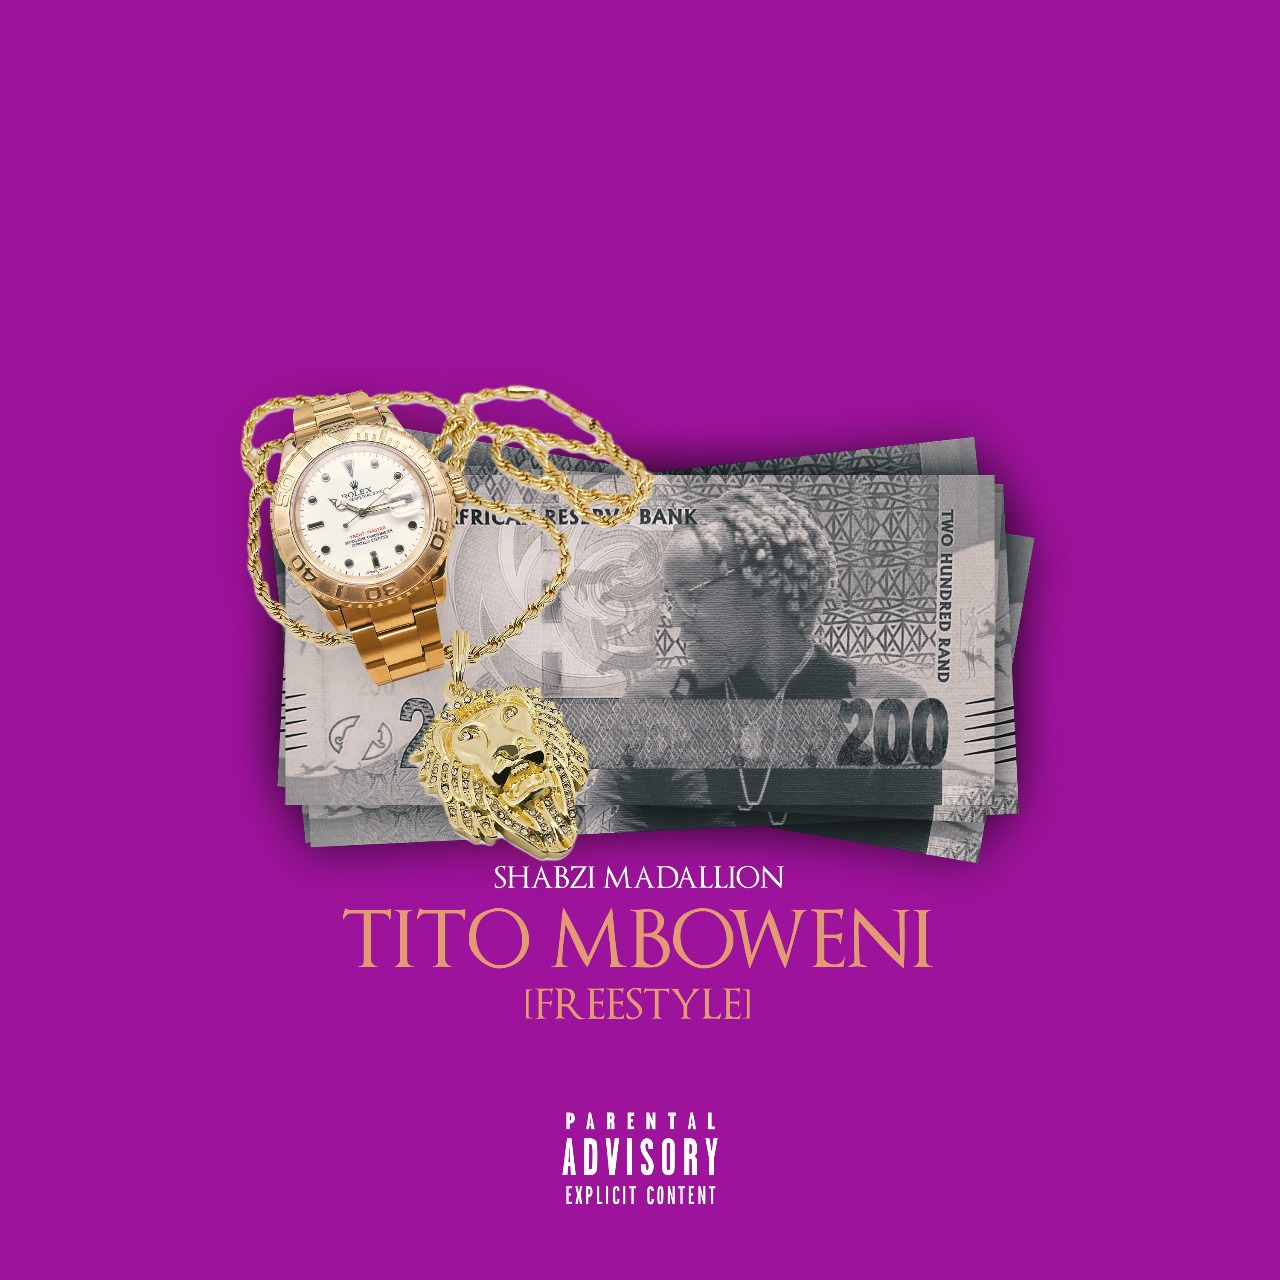 ShabZi Madallion Drops 'Tito Mboweni' Freestyle [Listen] ShabZi Madallion Tito Mboweni Freestyle